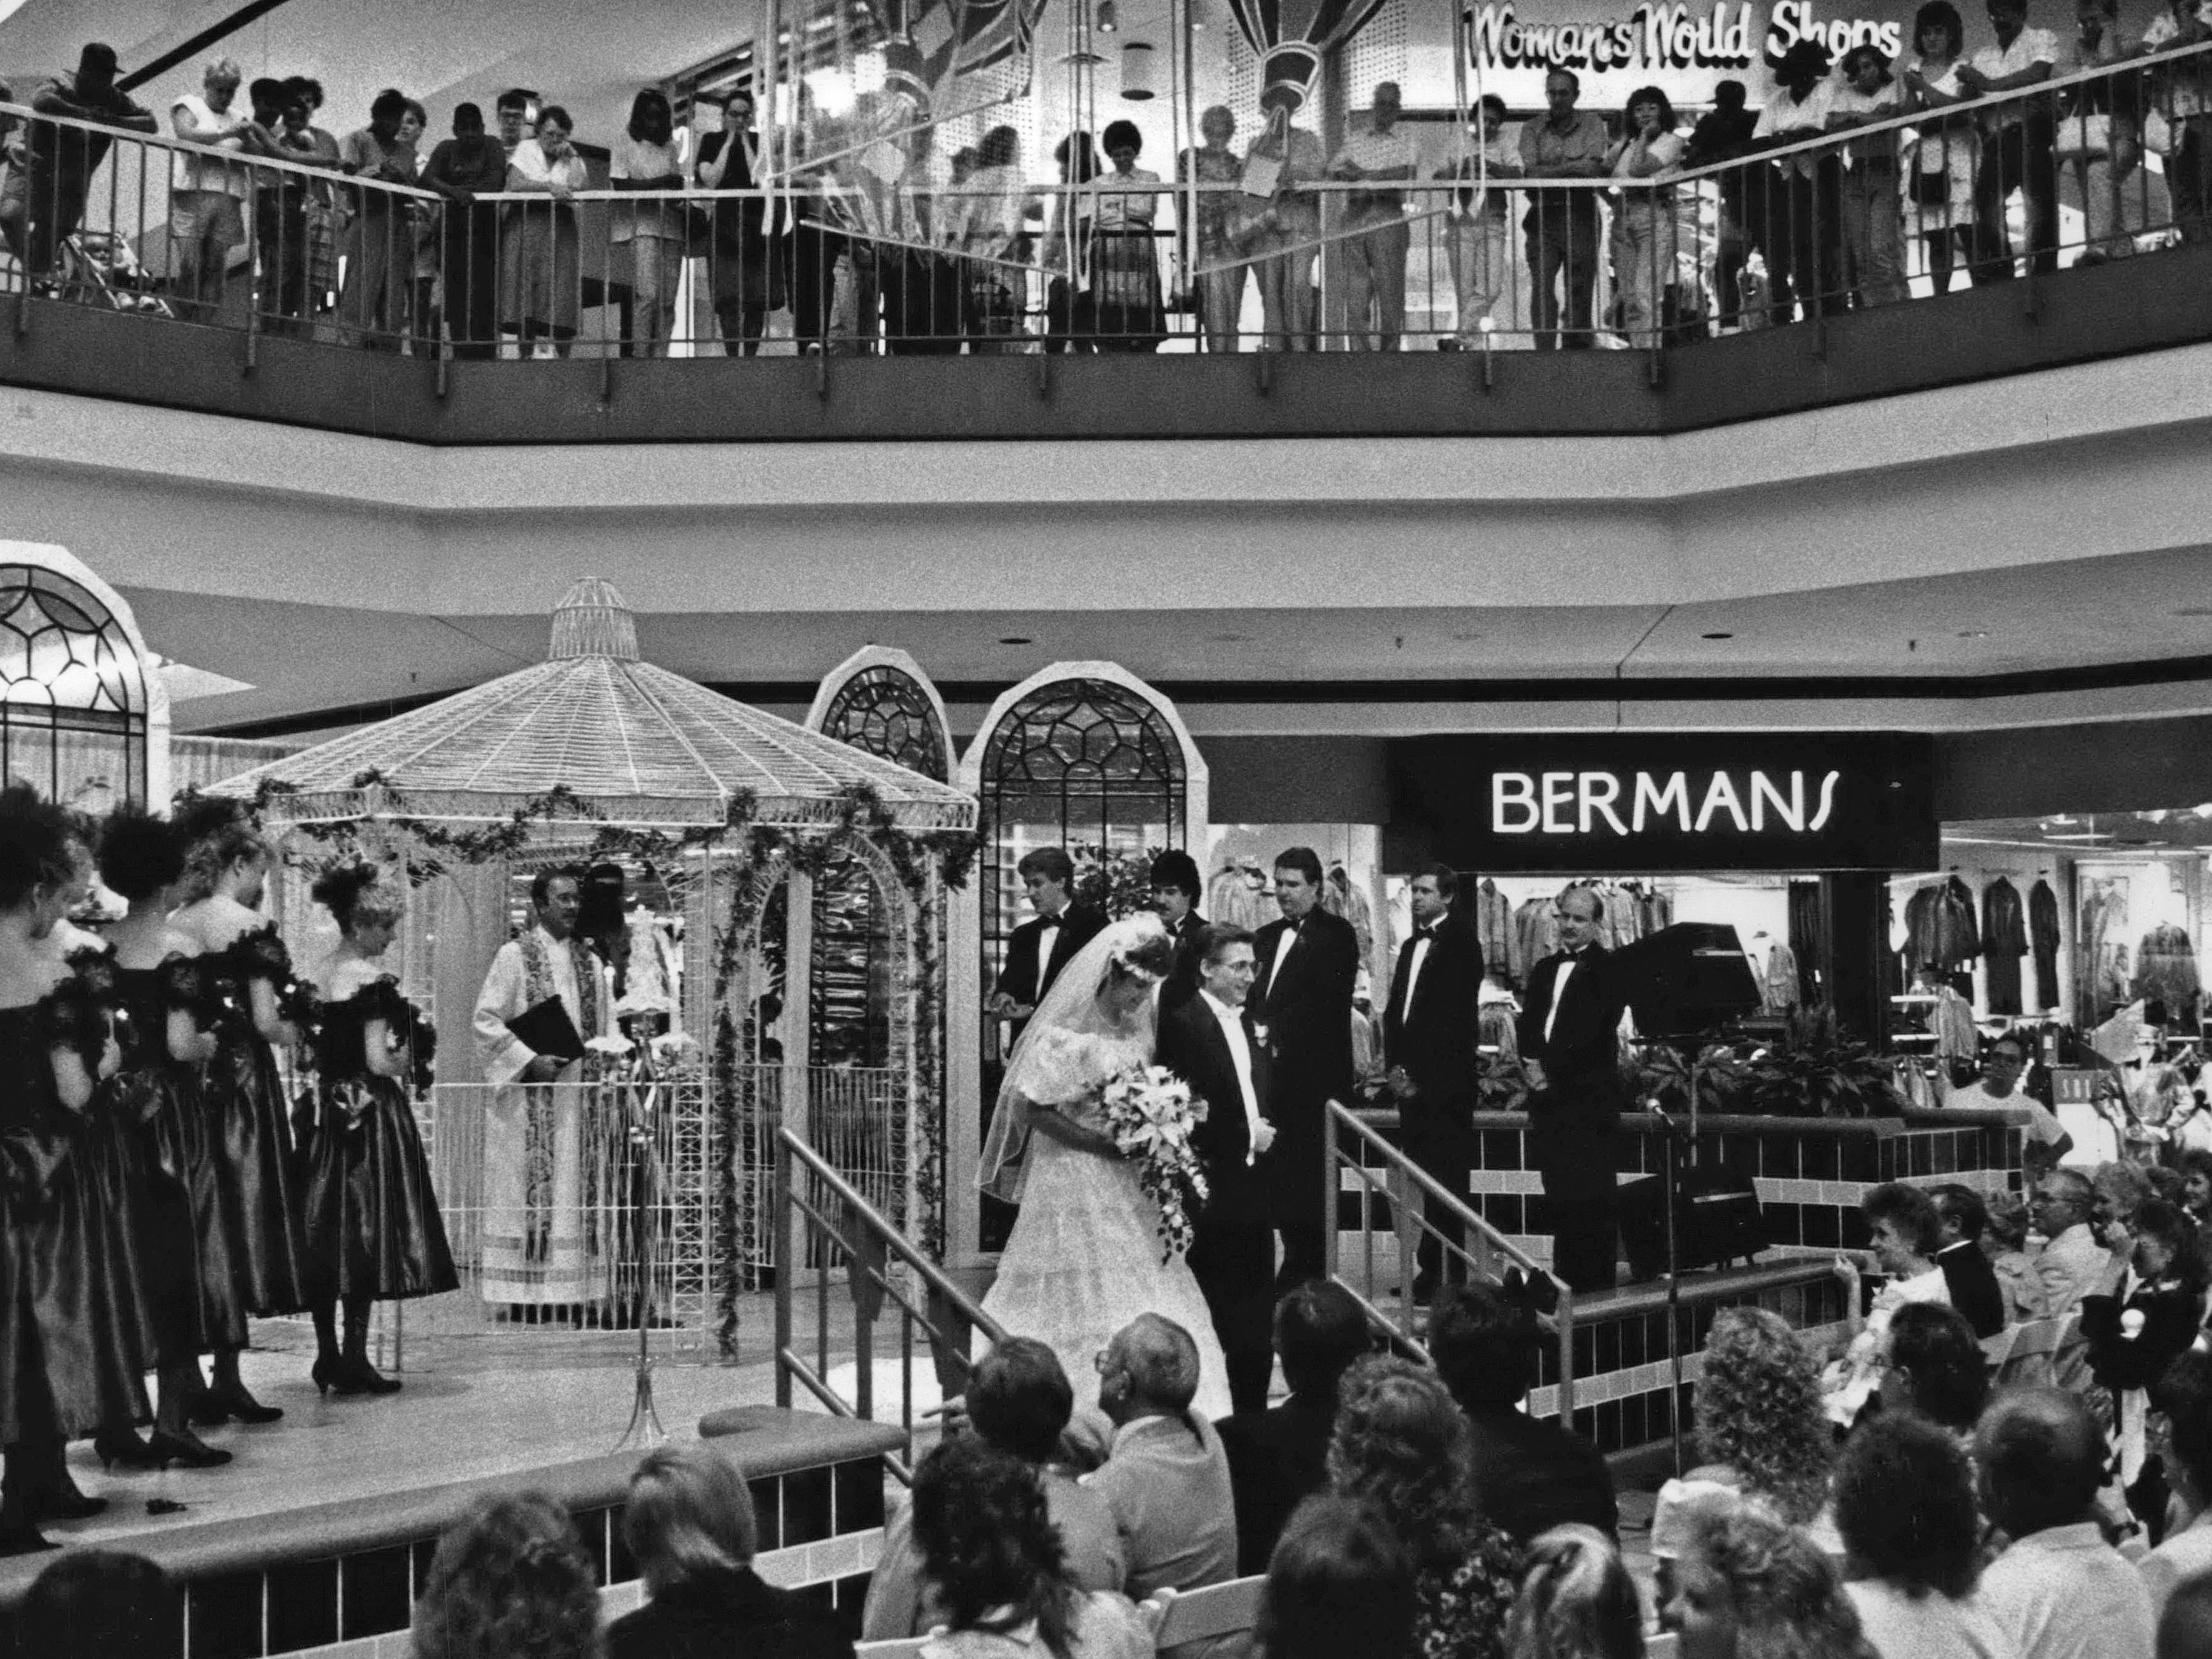 July 1990: Carina Tenant and Ron Geis, of Menomonee Falls, walk down the aisle at Northridge Shopping Center after their wedding on the Center Court Stage. The couple was selected from those applying for the wedding at a bridal fair in February at the center.